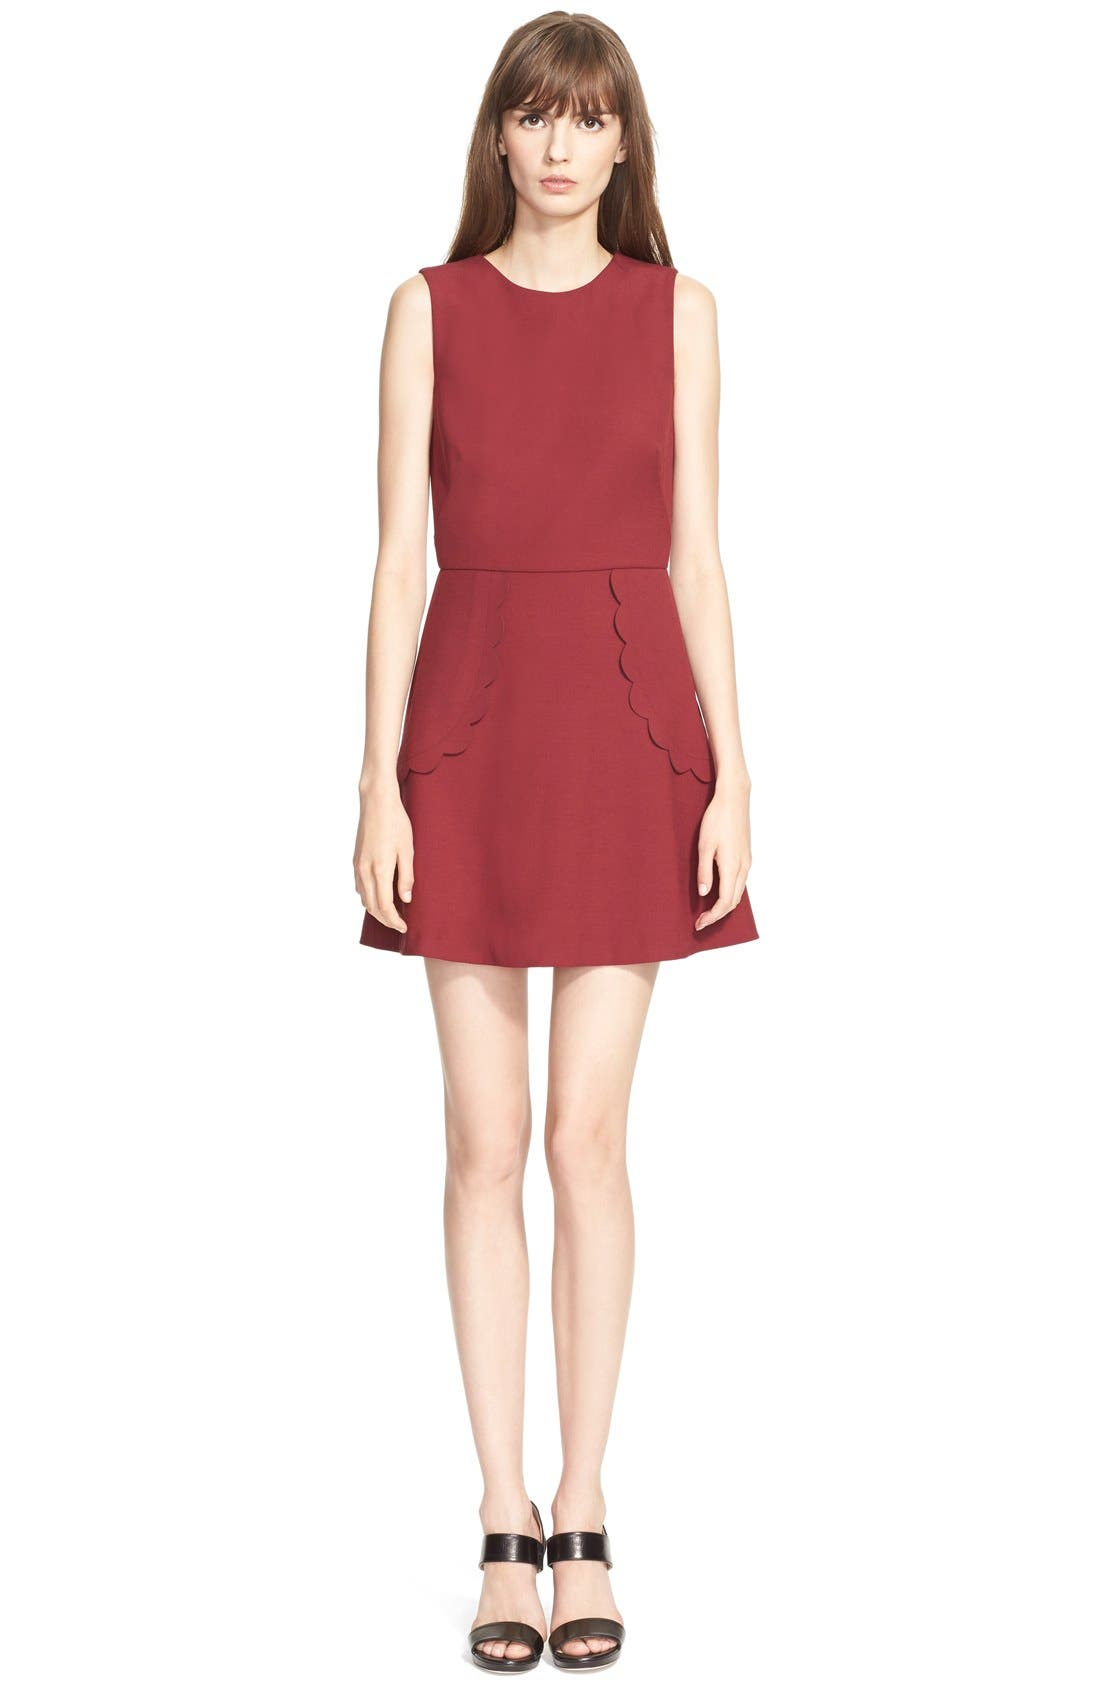 Main Image - RED Valentino Scallop Detail Cady Tech A-Line Dress